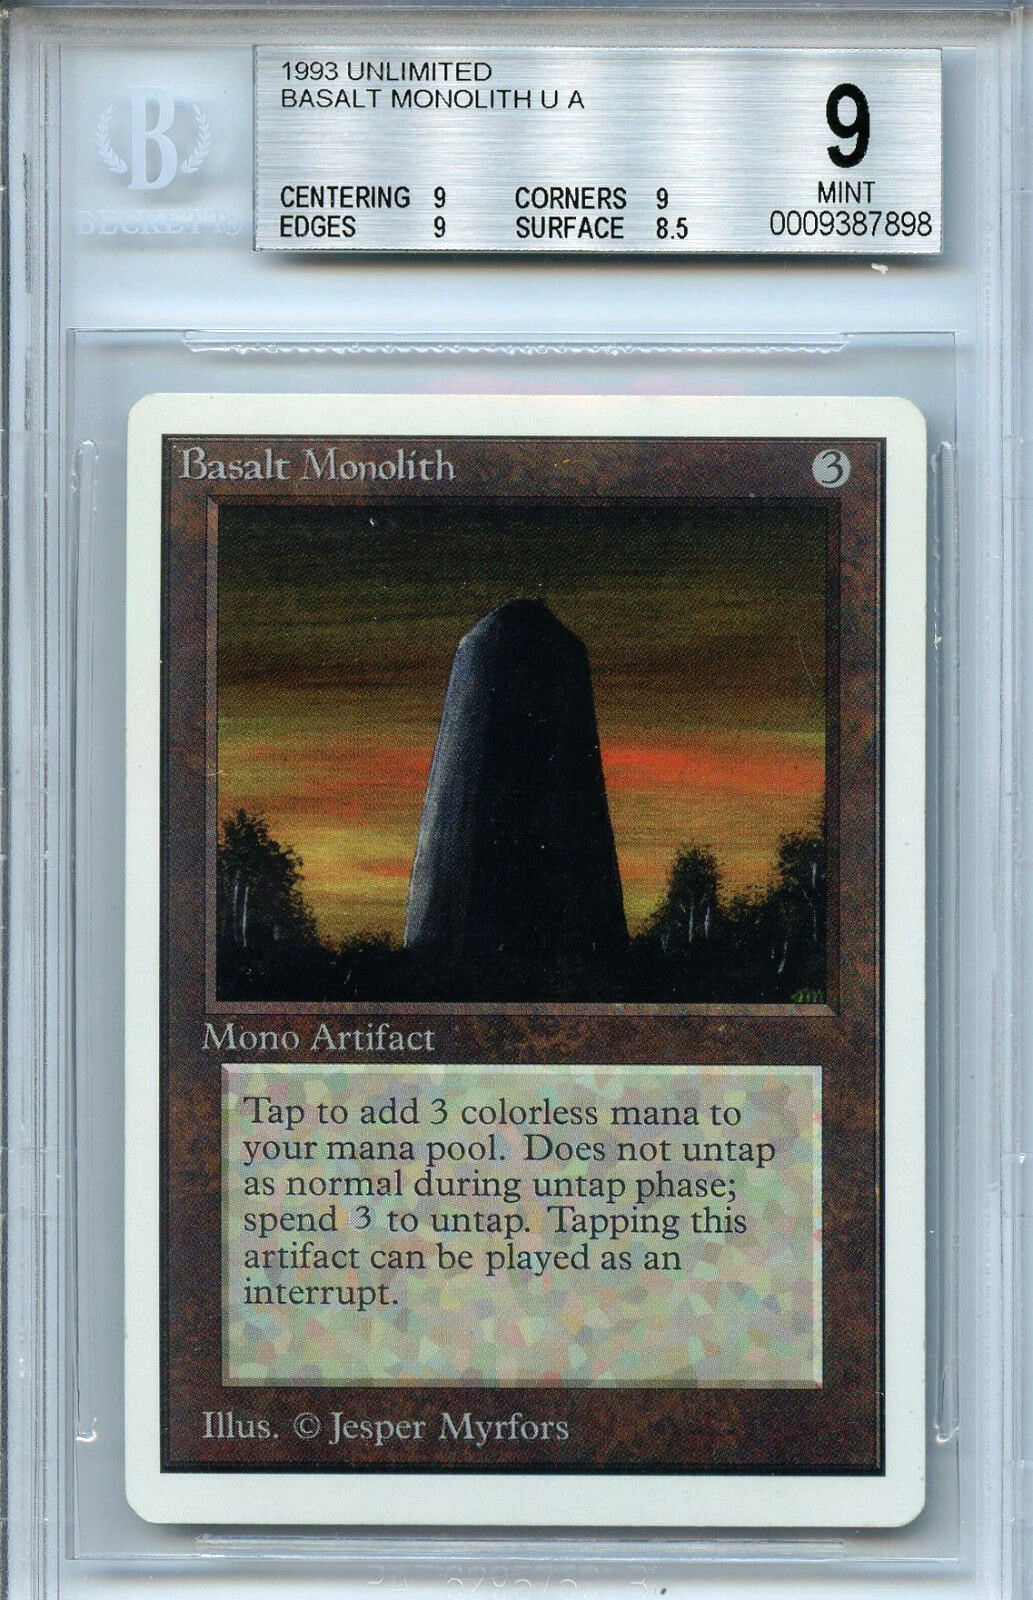 Mtg unbegrenzte basalt monolith bgs 9,0 (9) - karte magic the gathering 7898